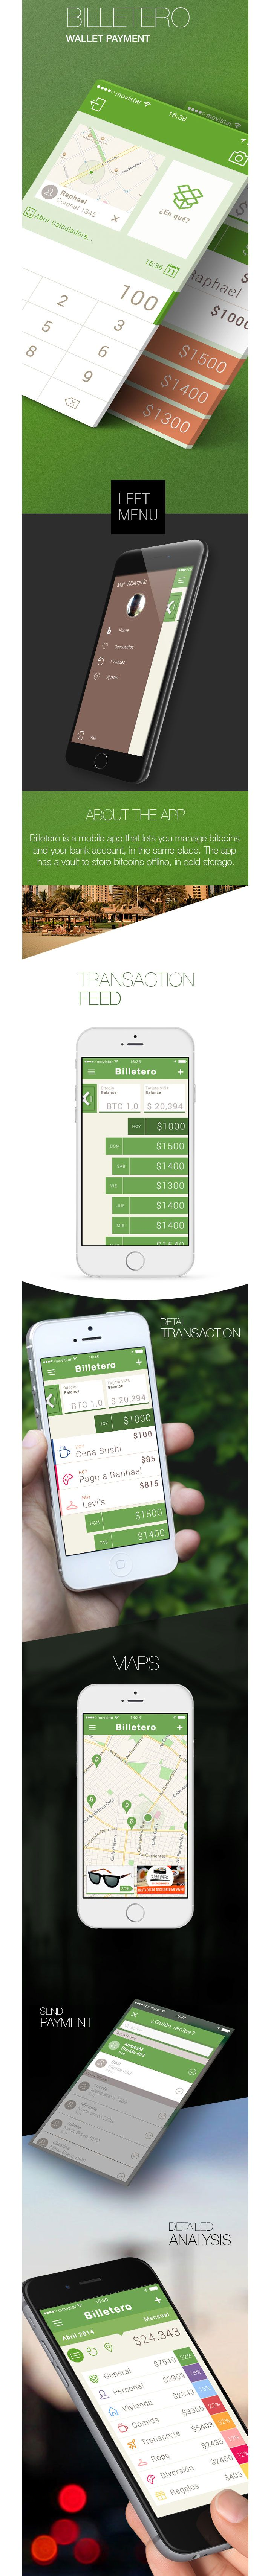 Billetero App - Wallet Payments iPhone 6